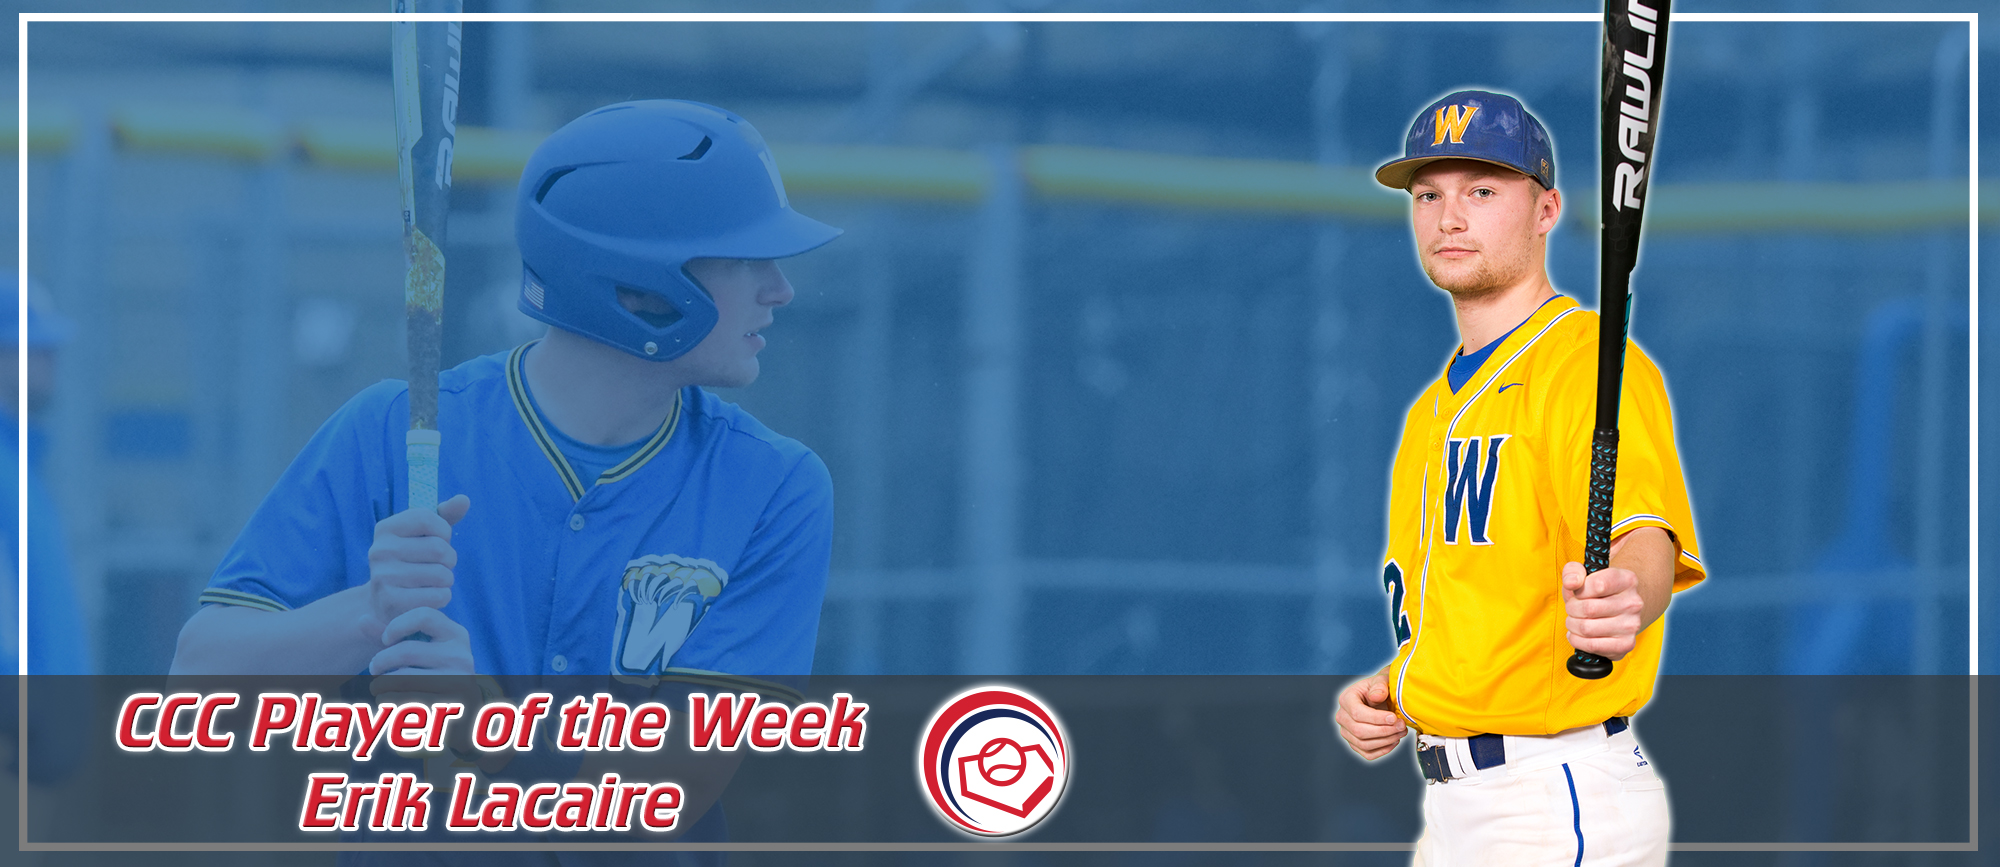 Erik Lacaire Repeats as CCC Player of the Week